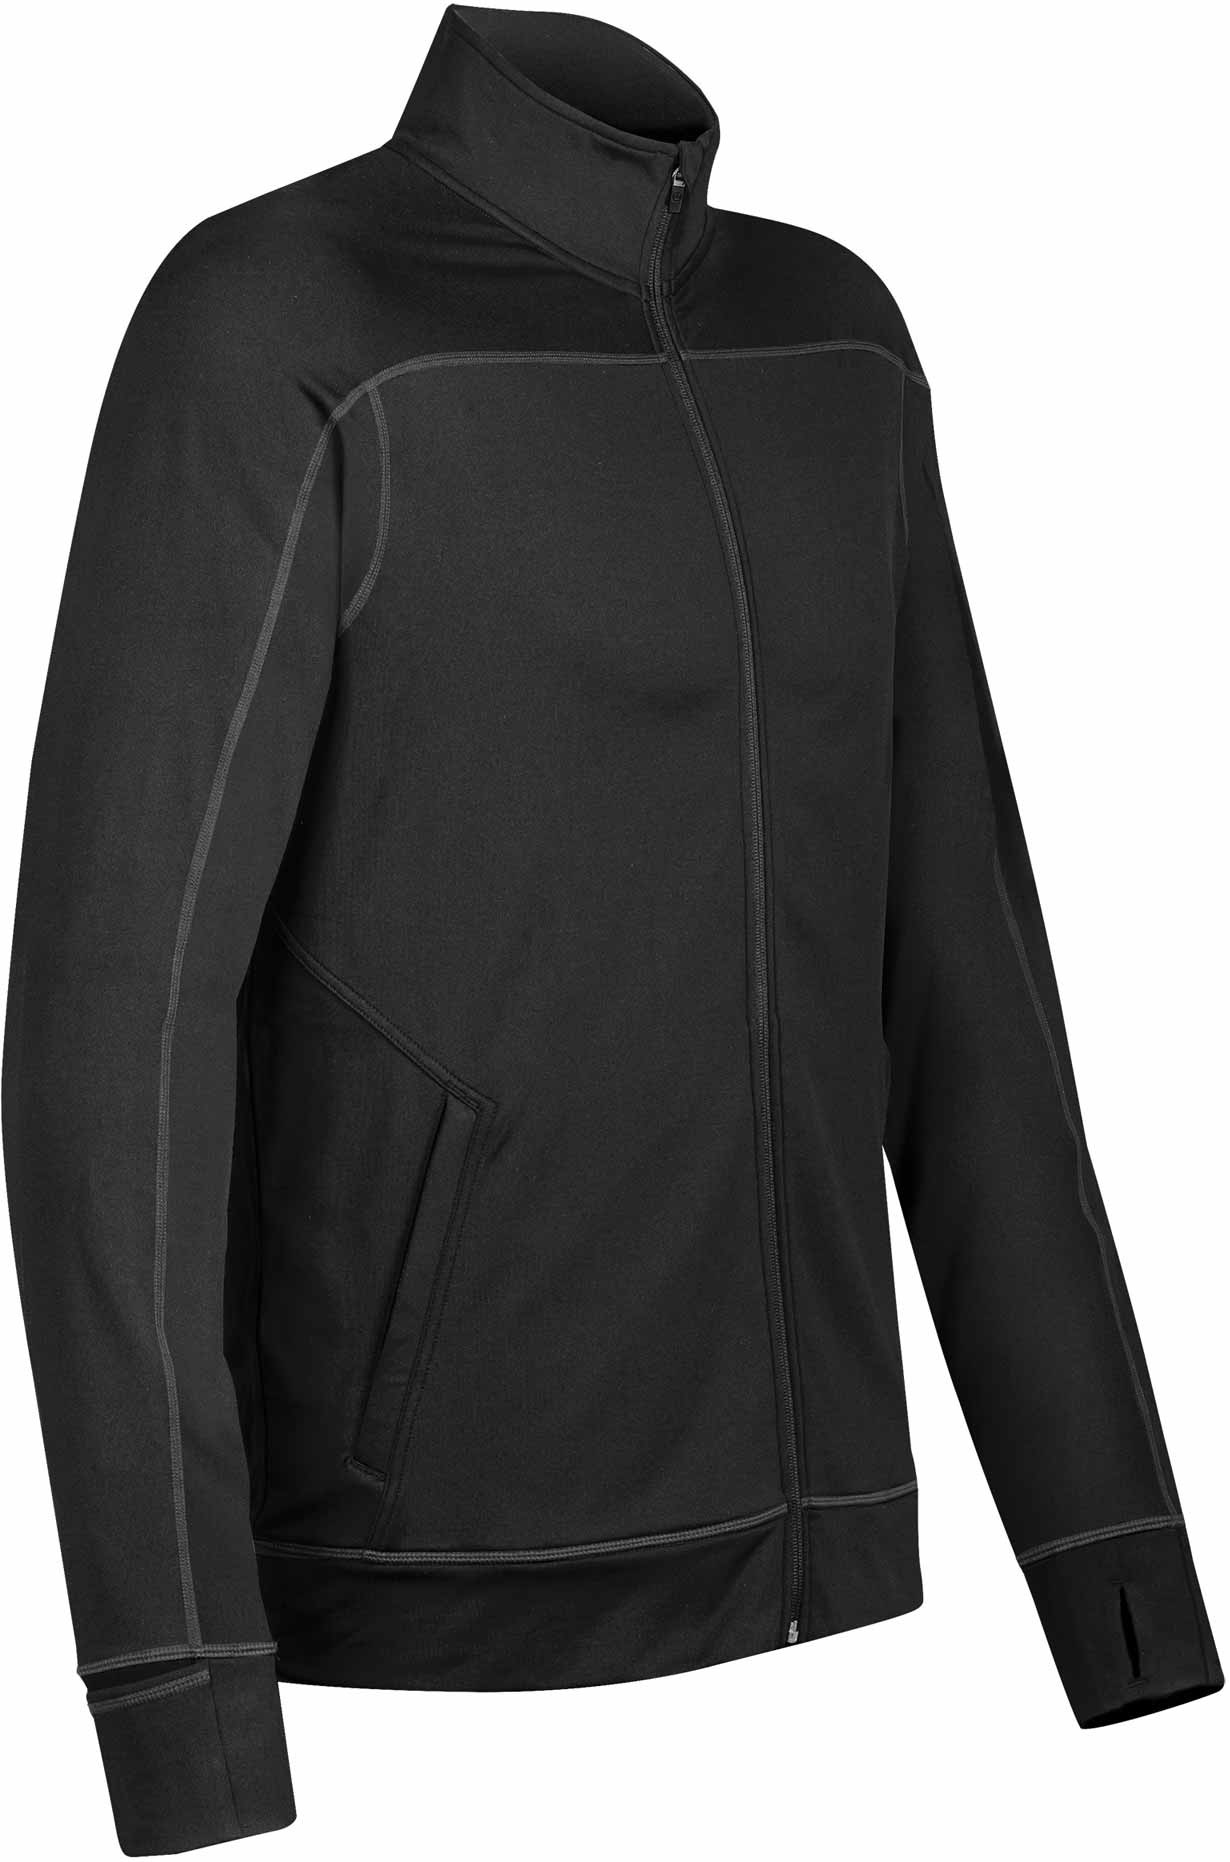 Stormtech Men's Lotus Full Zip